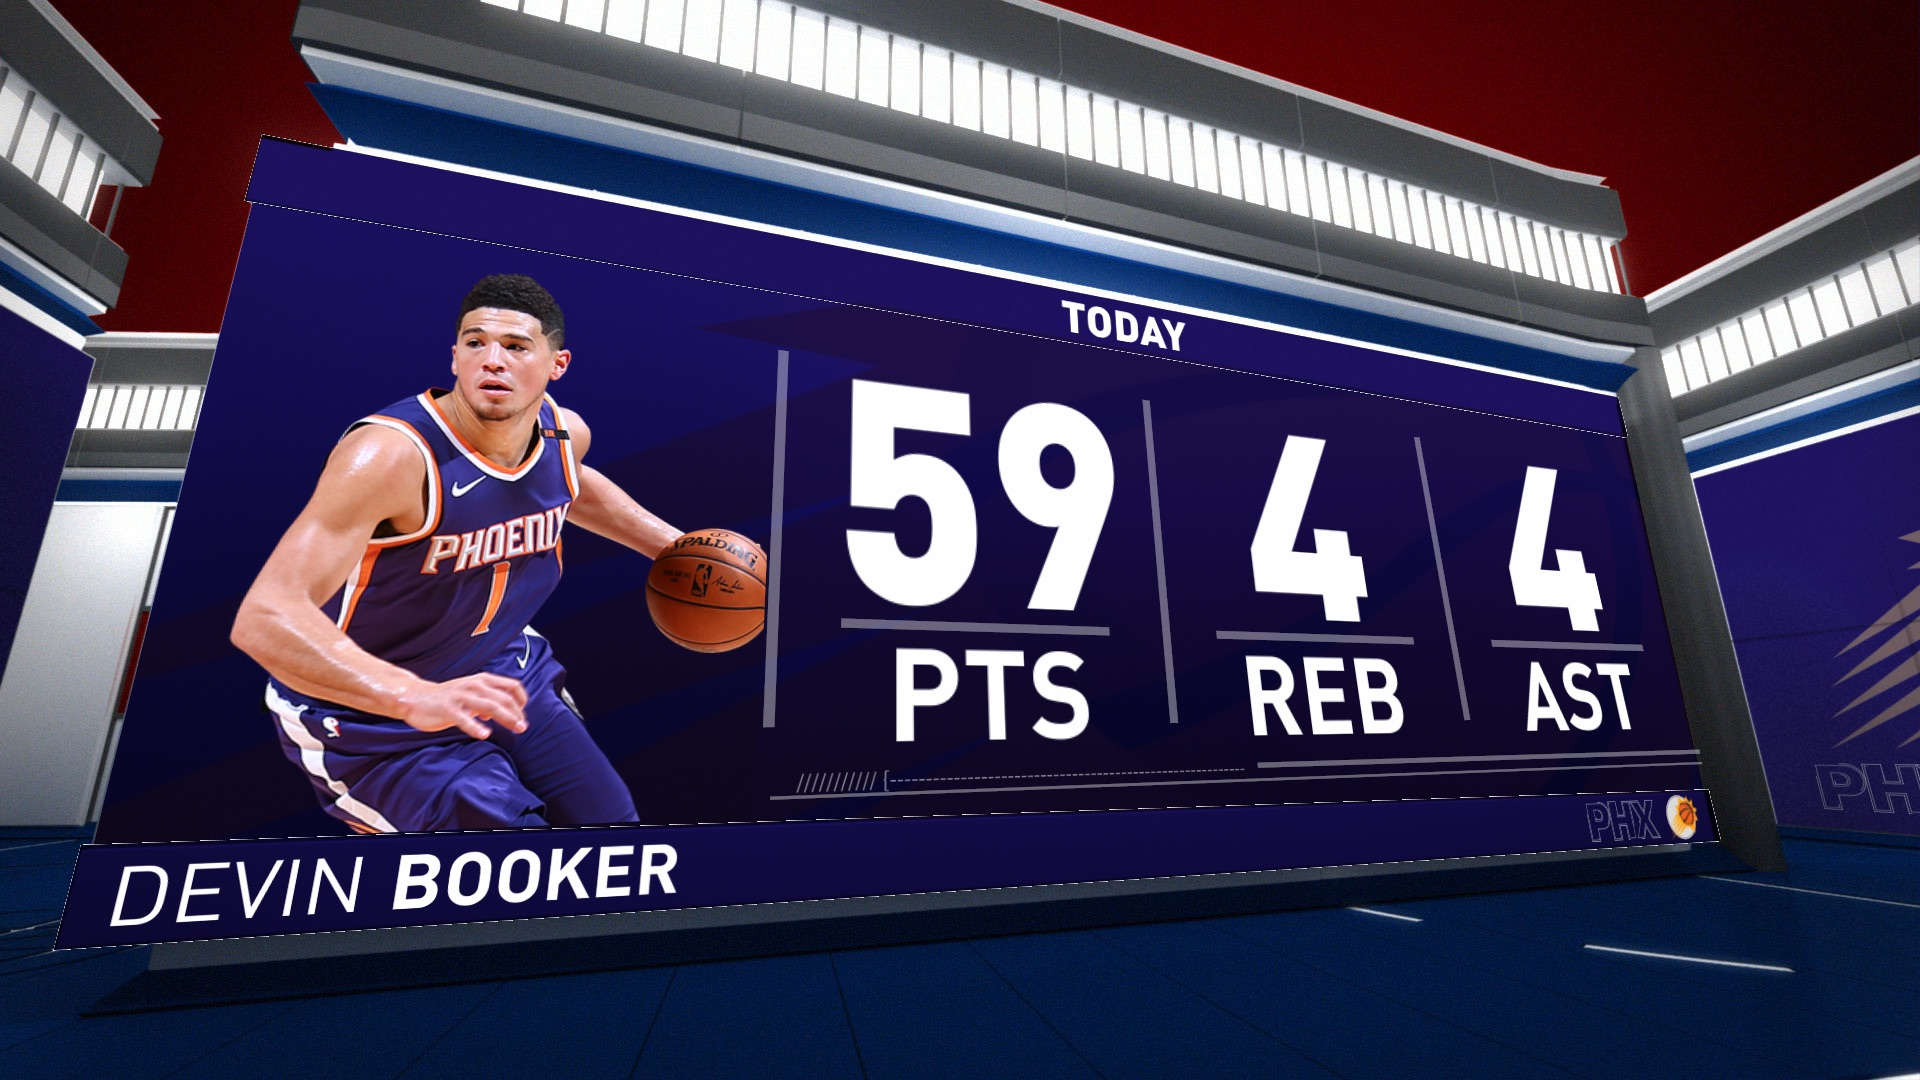 Must-See: Devin Booker scores 59 points vs. Jazz